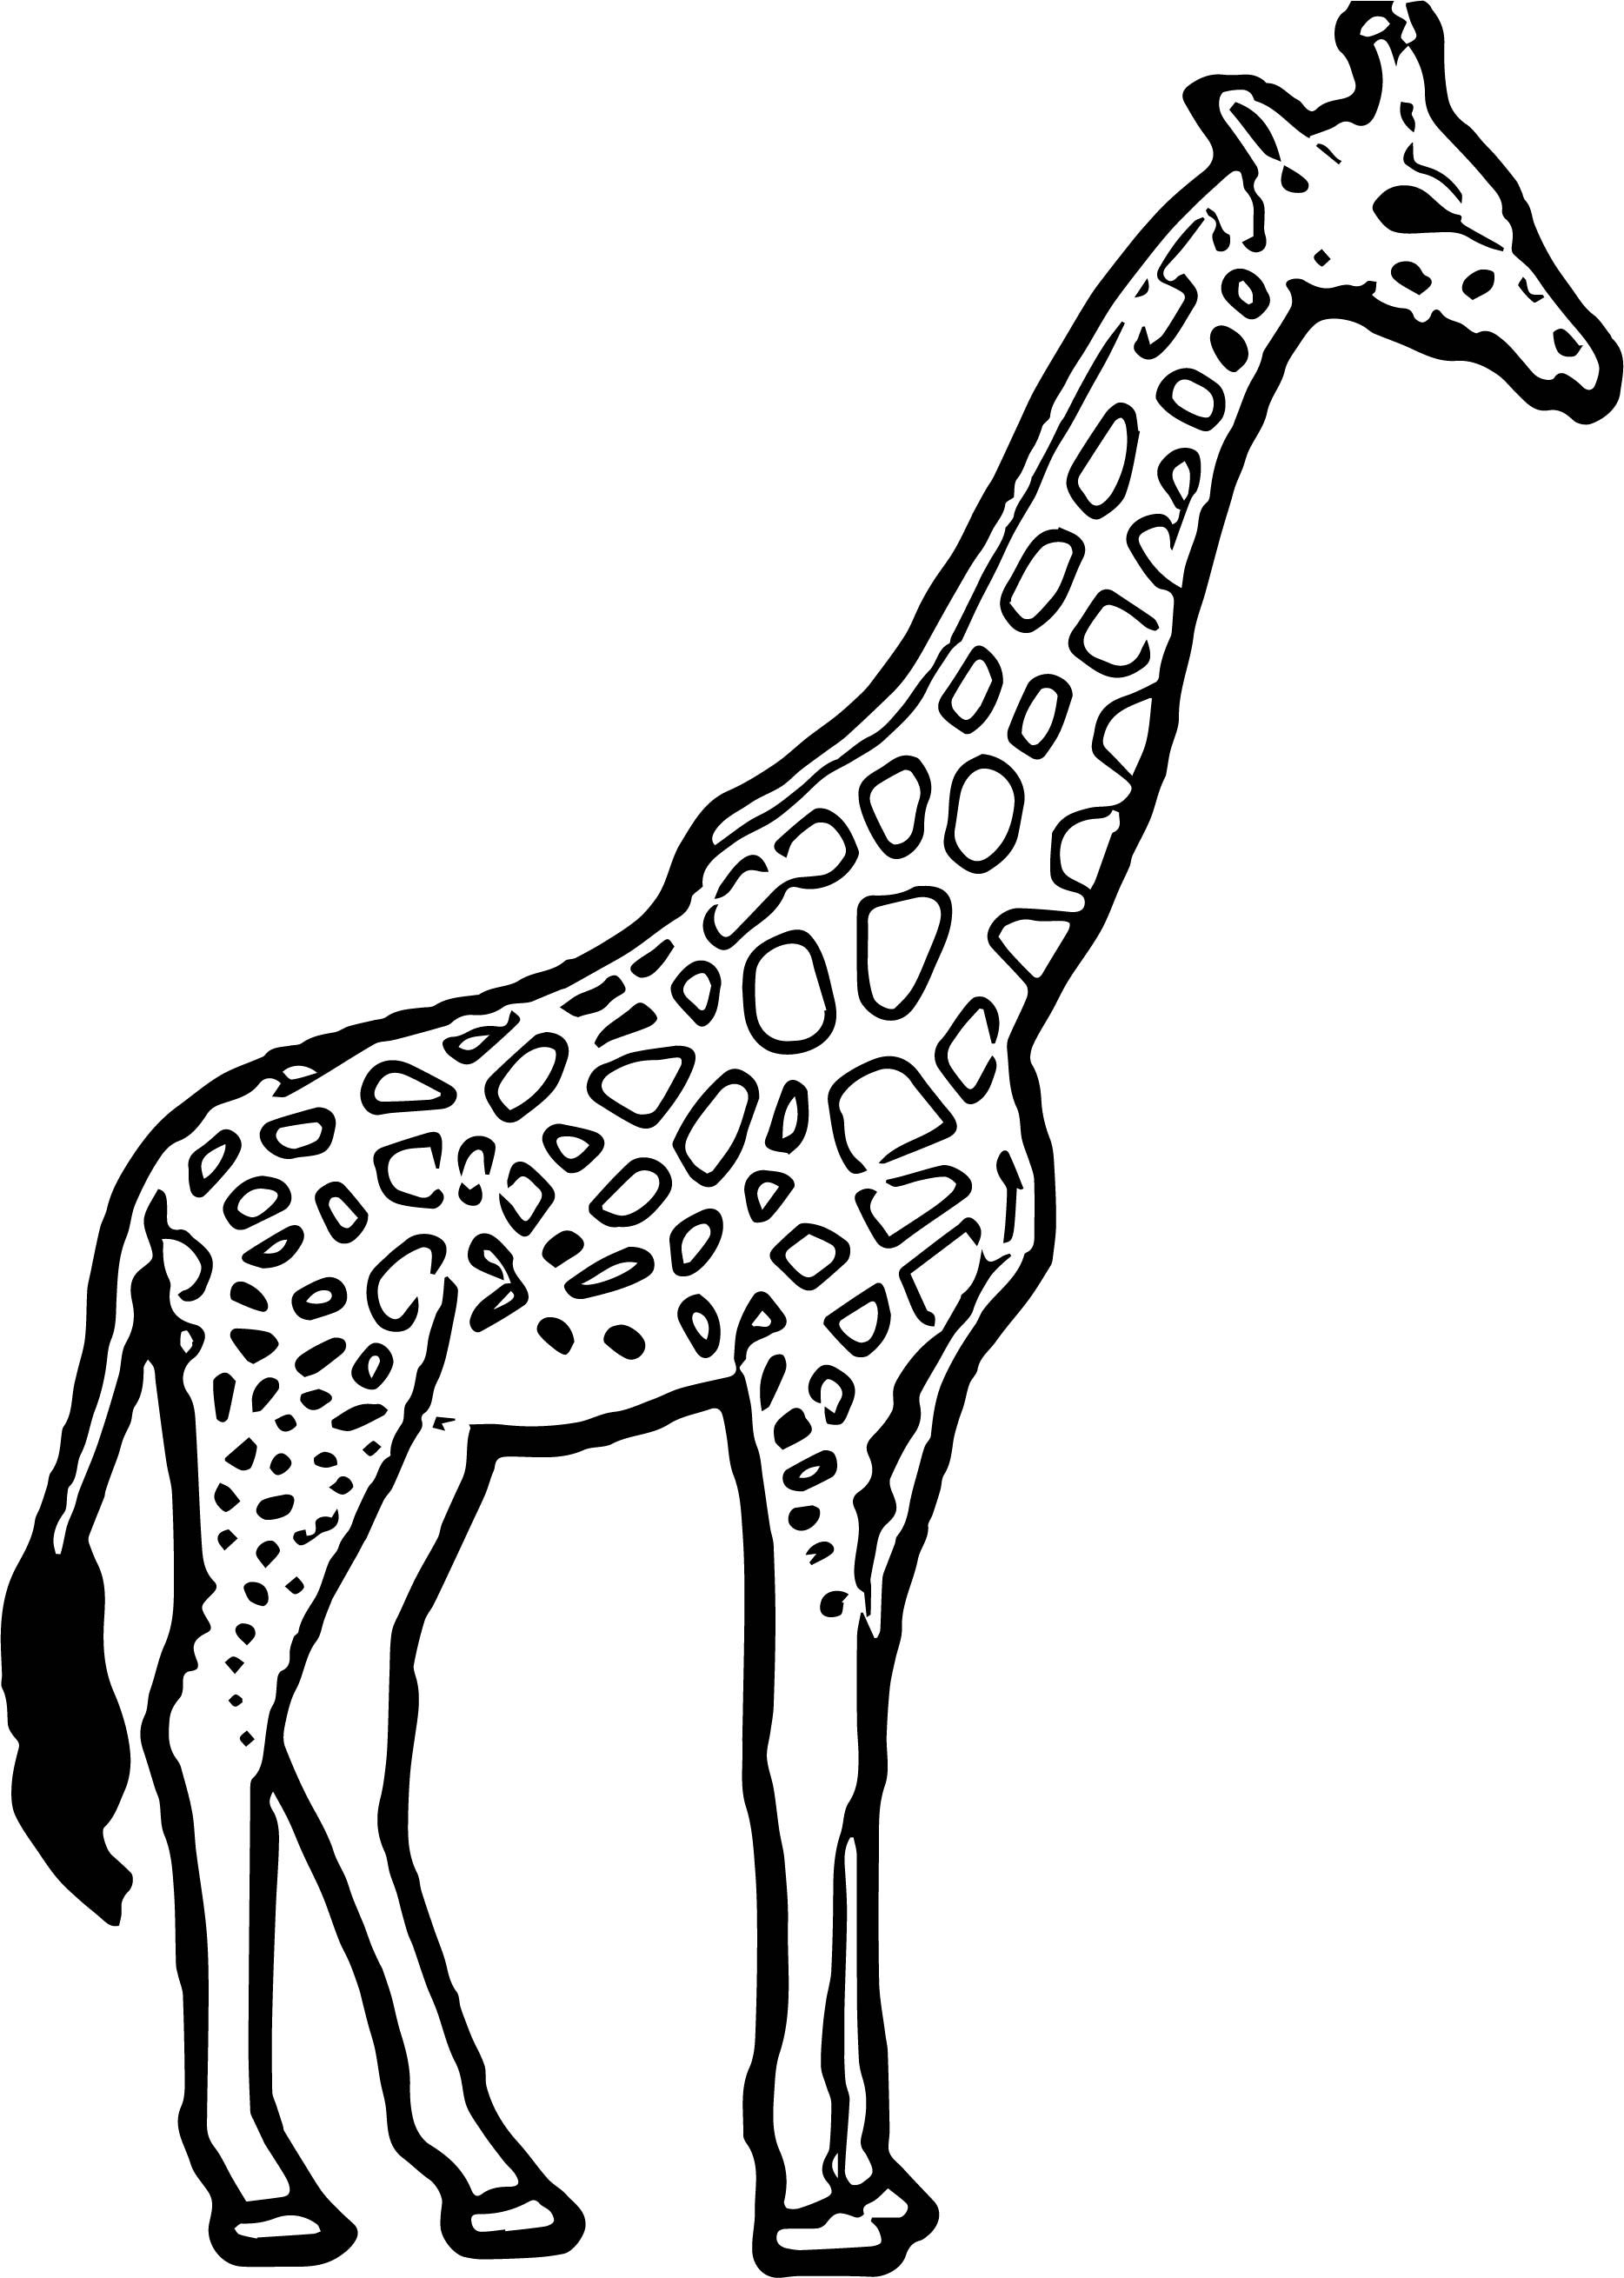 Giraffe Thirsty Coloring Page